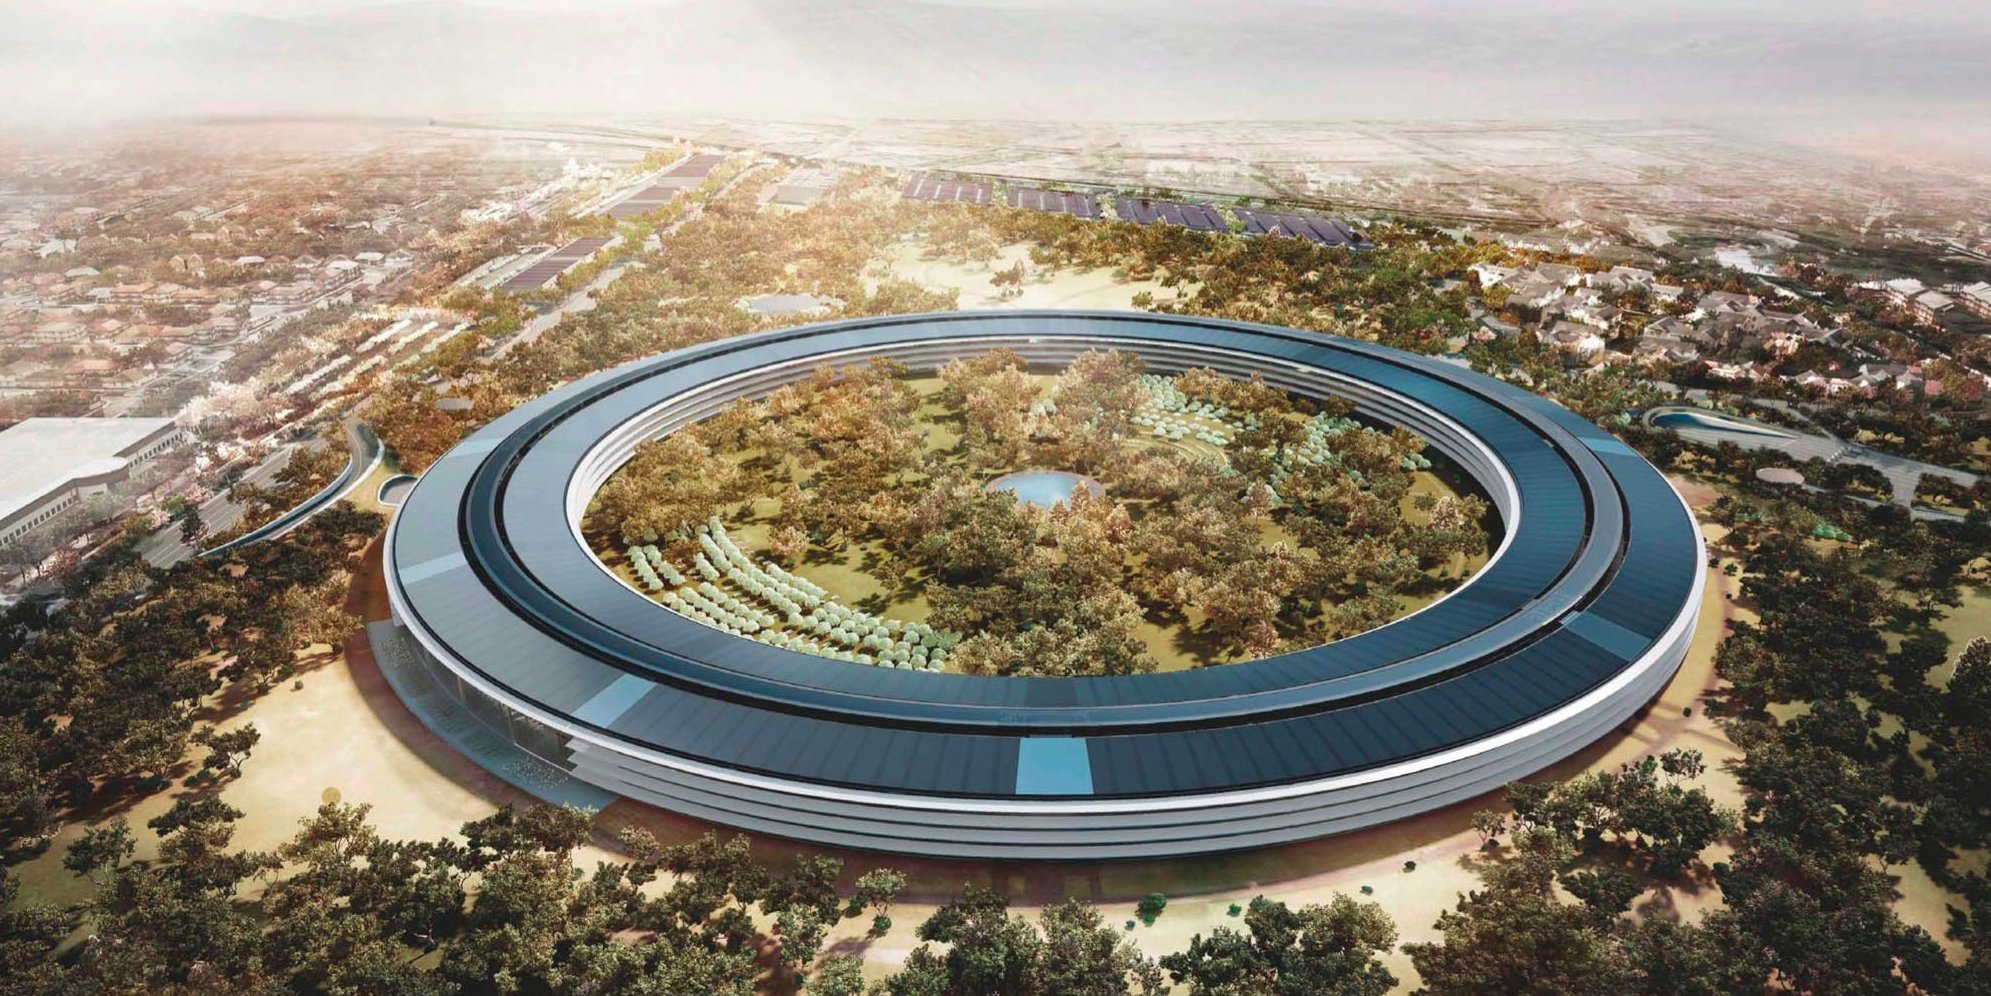 Apple Campus 2 Construction Finishing Up as Glass Installed in Atrium and Landscaping Expands